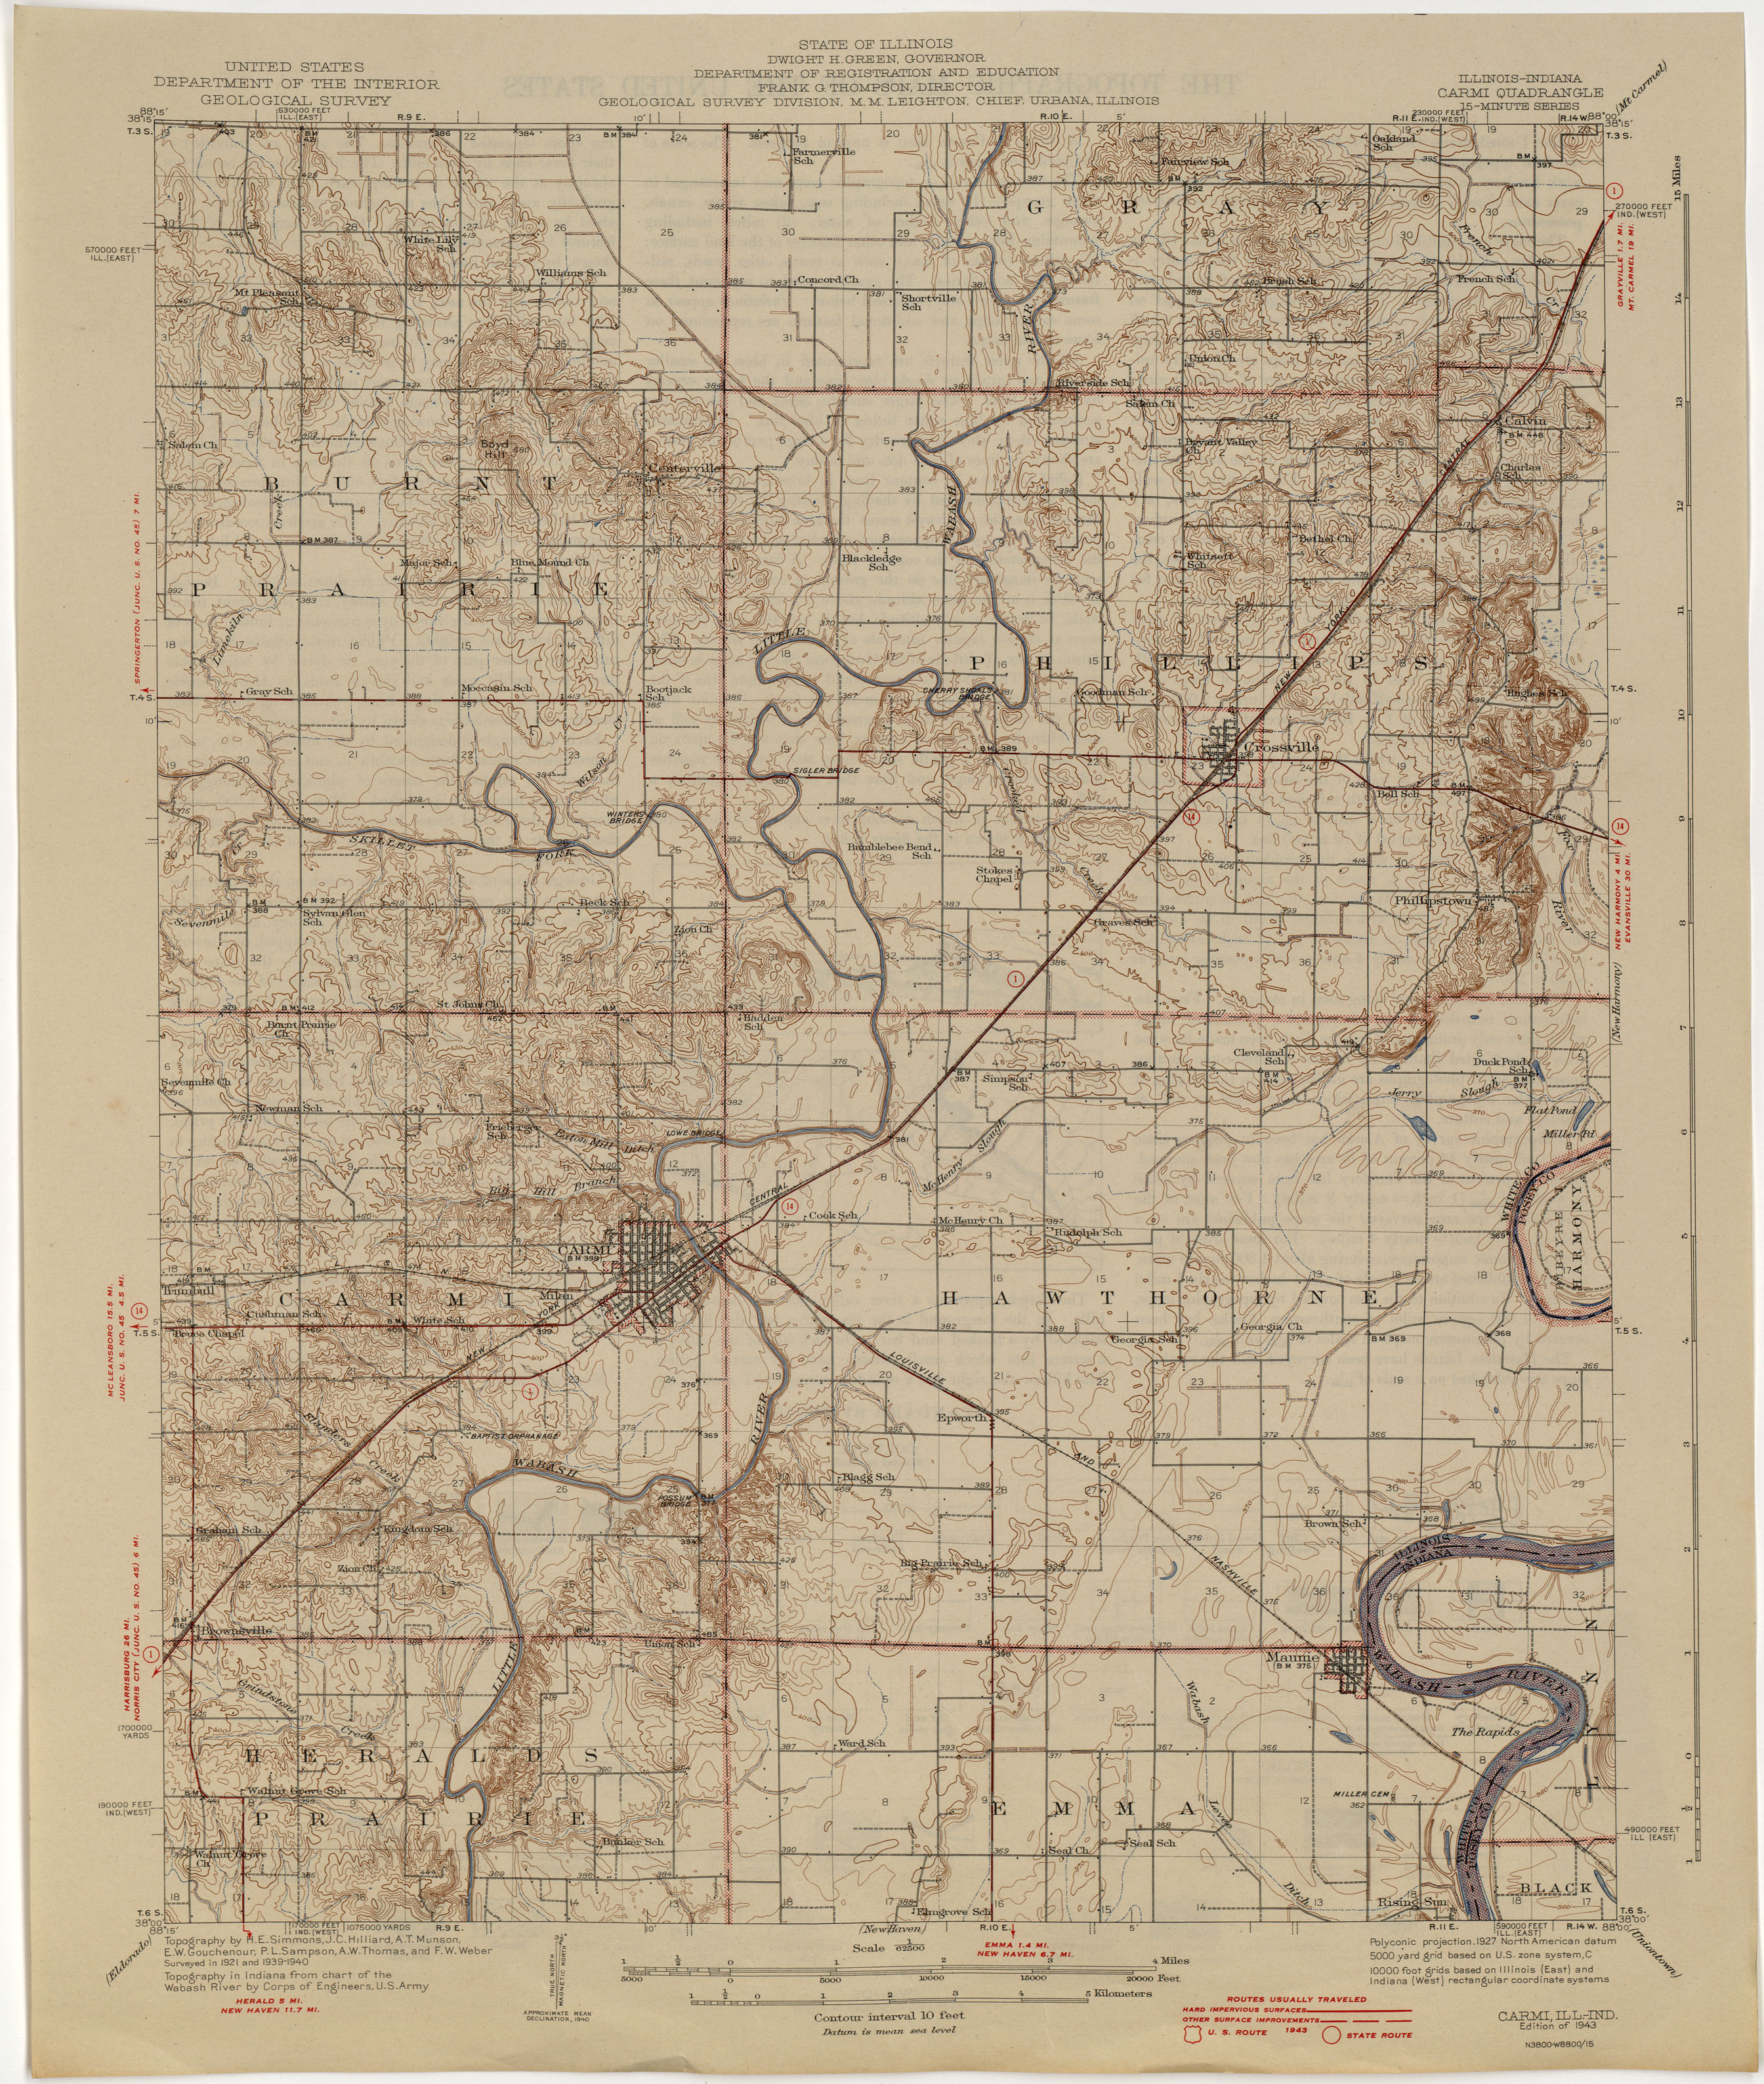 Illinois Historical Topographic Maps PerryCastañeda Map - Us highway map 1940